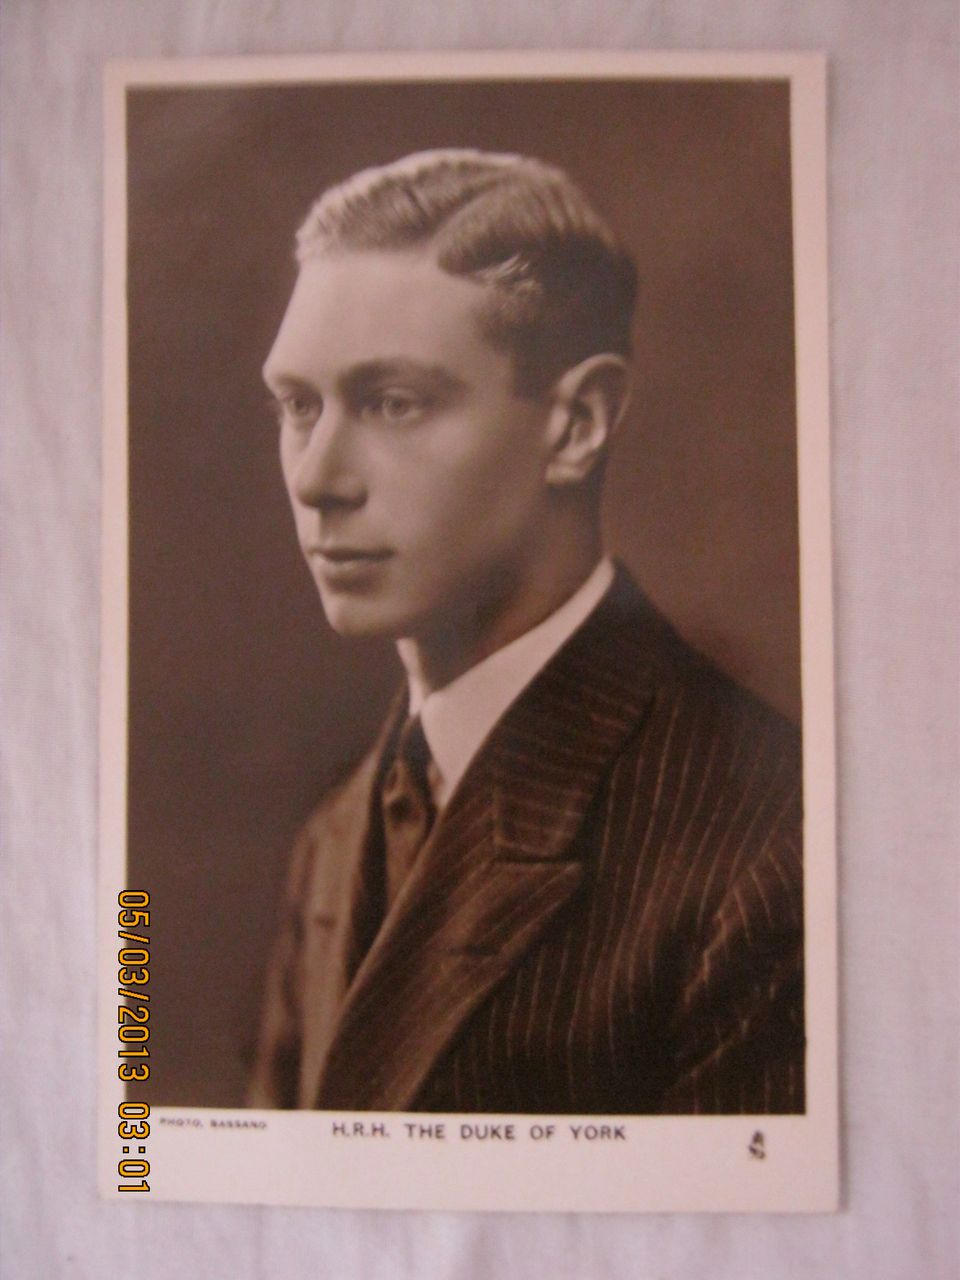 H.R.H. The Duke  of York